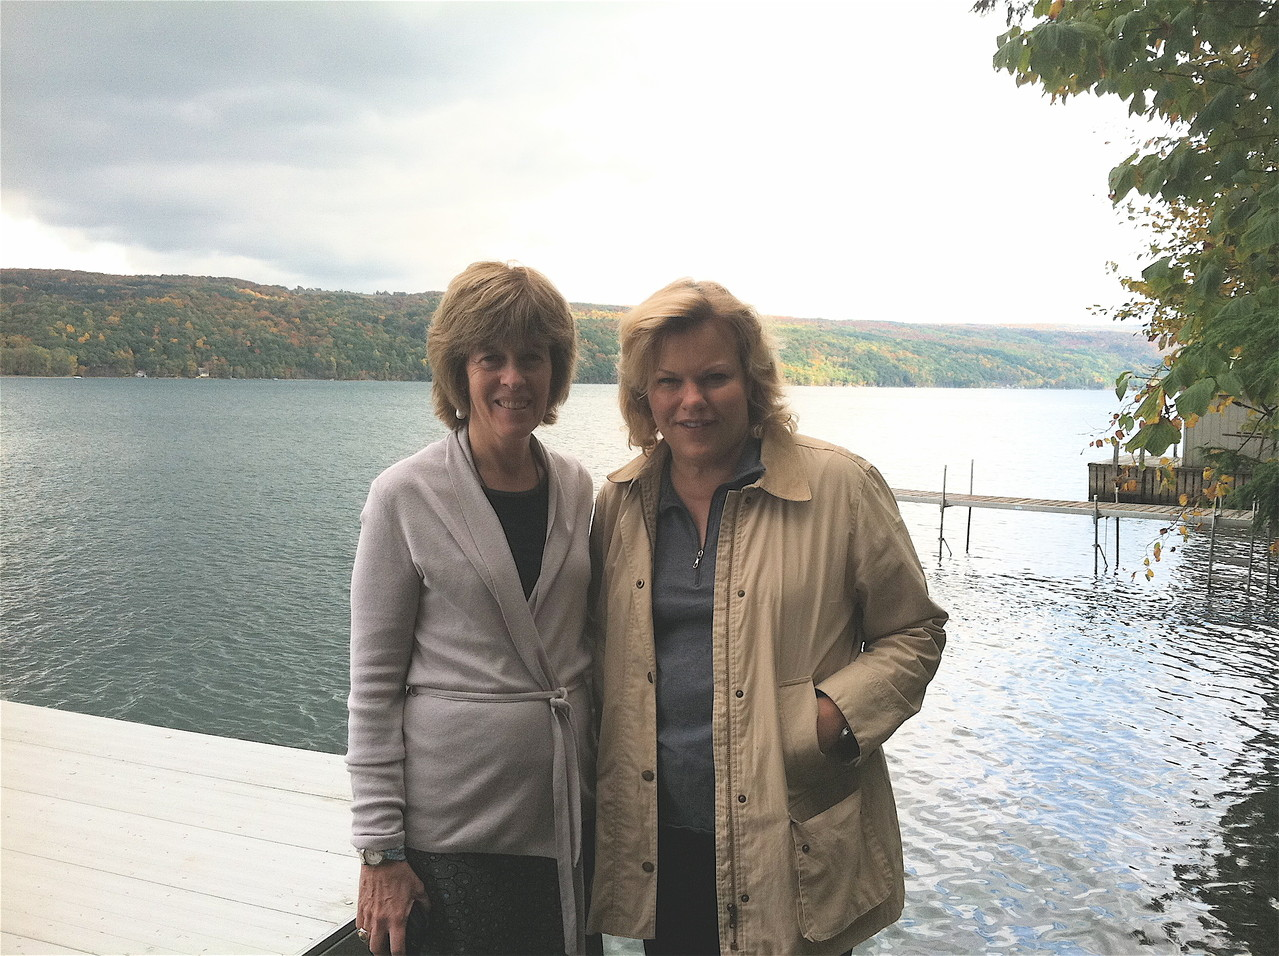 Nancy Hynes & Celeste Gudas, Skaneateles Lake Oct.. 6, 2012